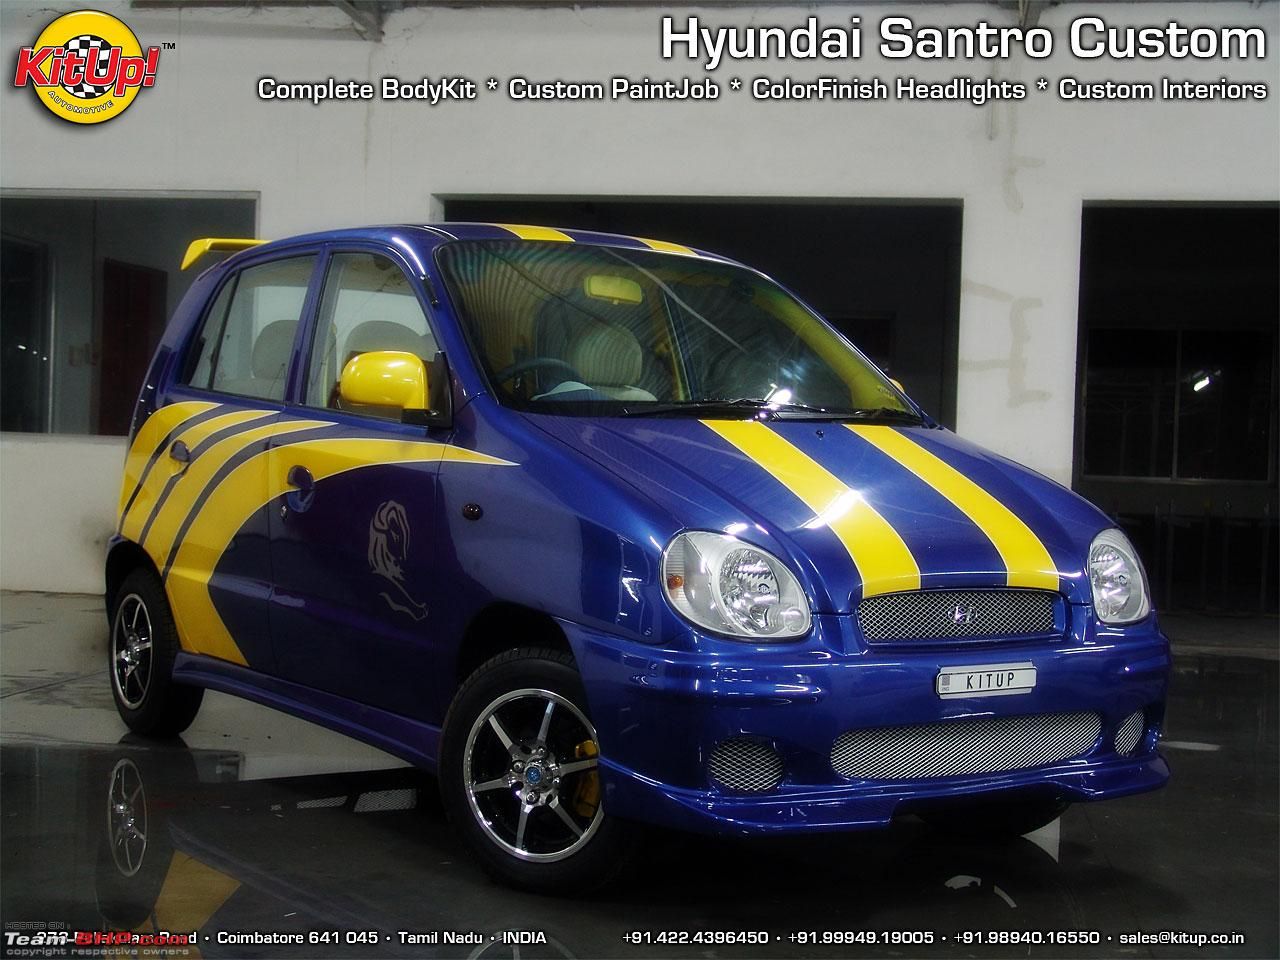 Hyundai Santro Zip Drive 2002 Model Restoration Project TeamBHP